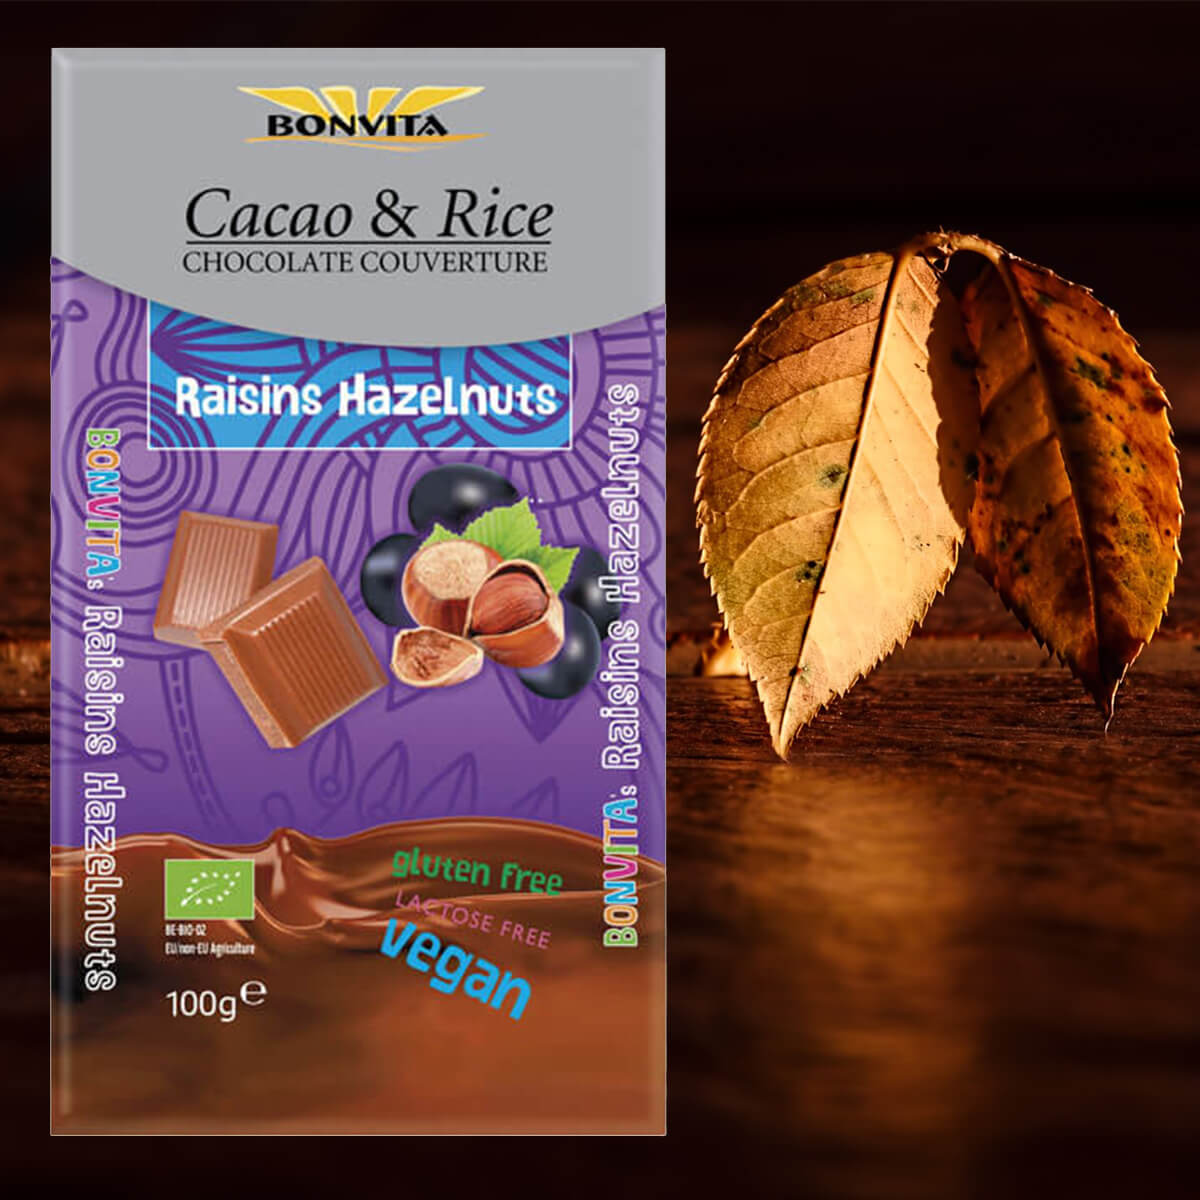 Bonvita Cacao & Rice Chocolate Couverture Hazelnut Raisin 100g